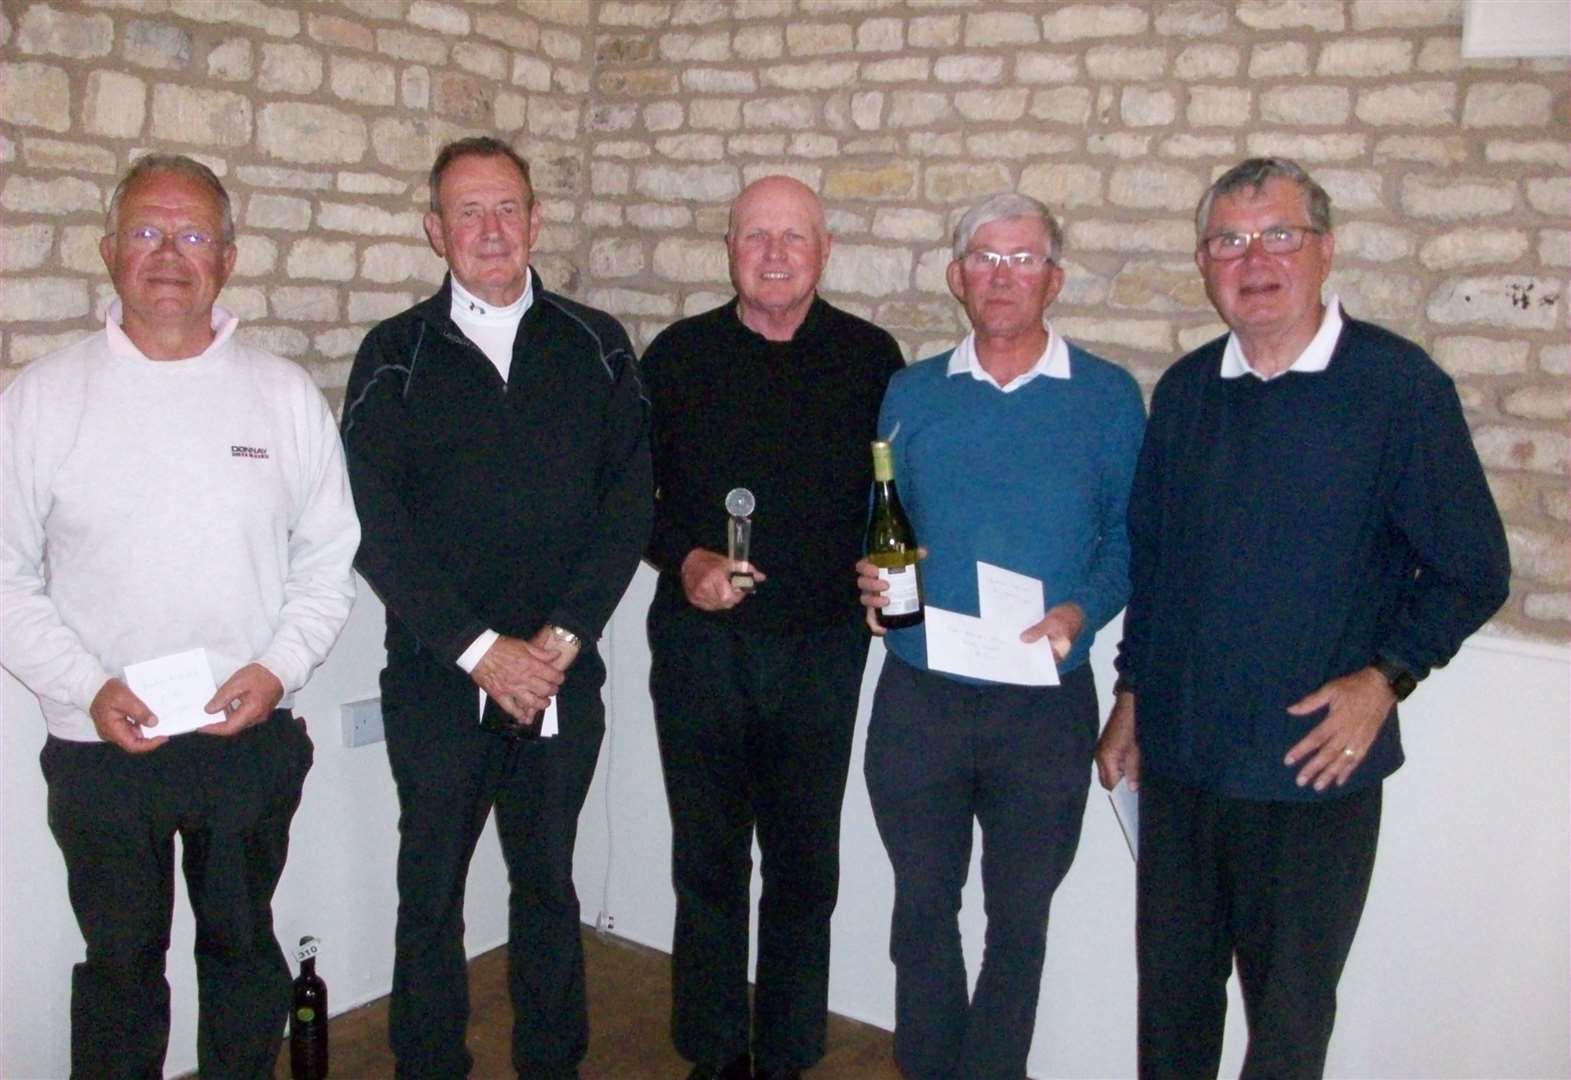 Dobson leads the Toft prize spree by taking top spot in Seniors Open